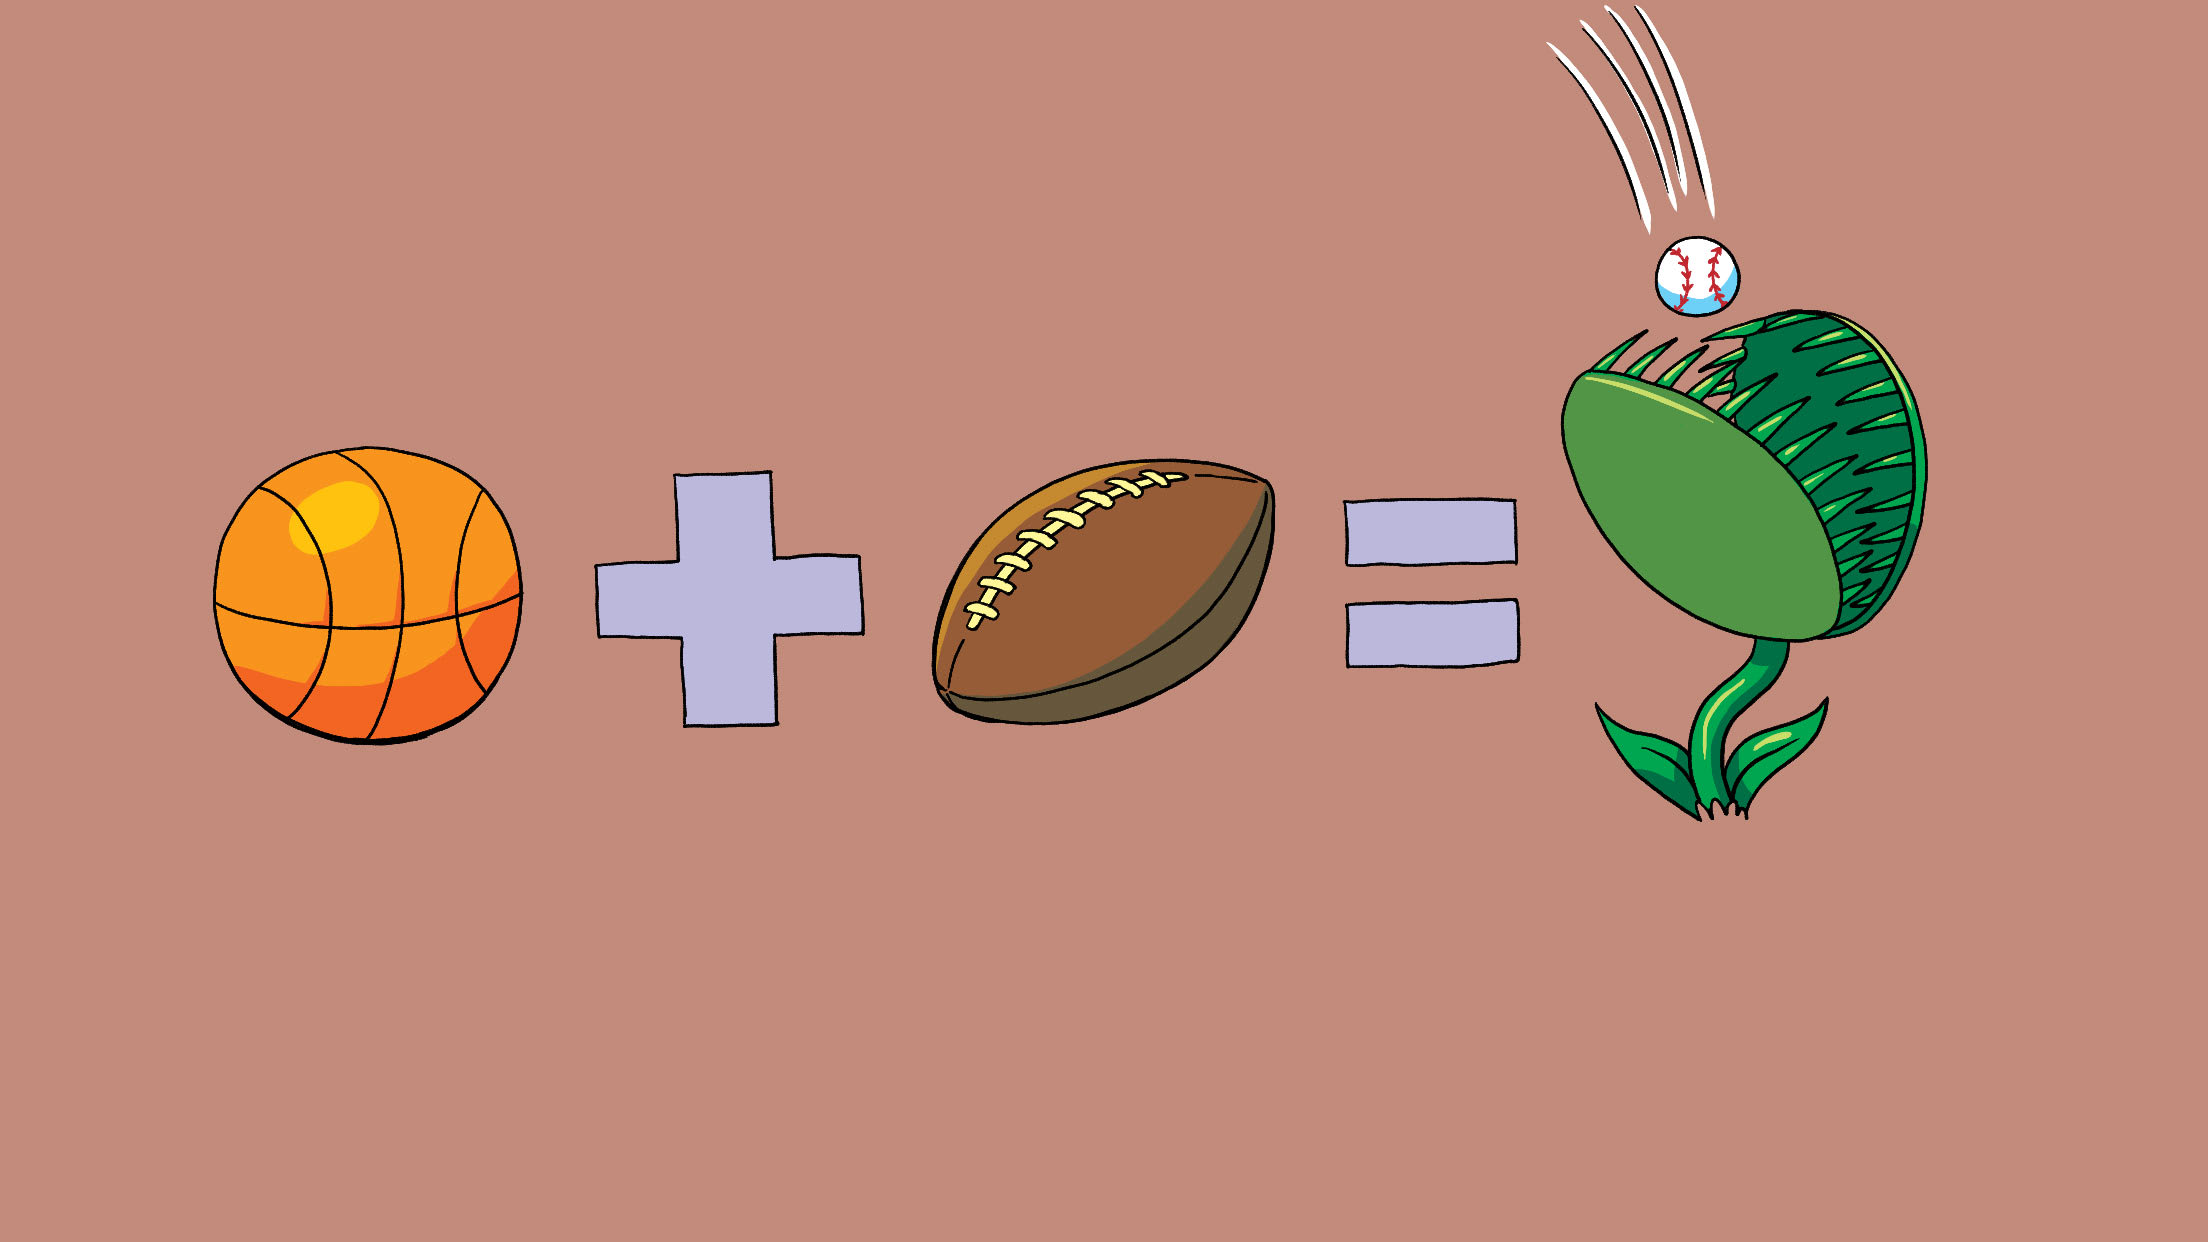 flytrap_equation